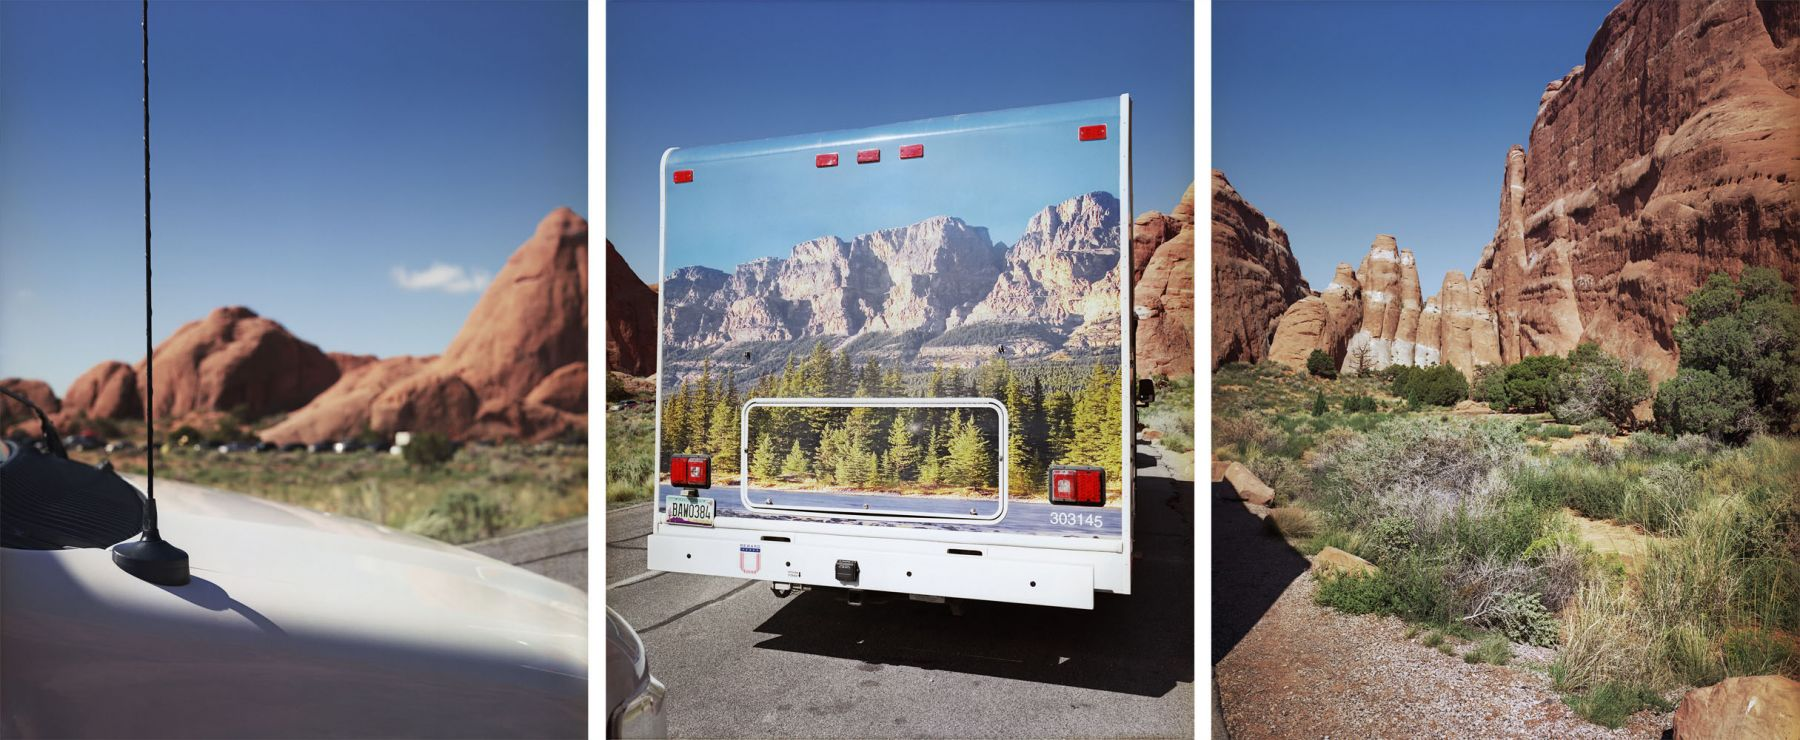 Final Destination, 2013. Three-panel archival pigment print, available as 24 x 60 or 40 x 90 inches.